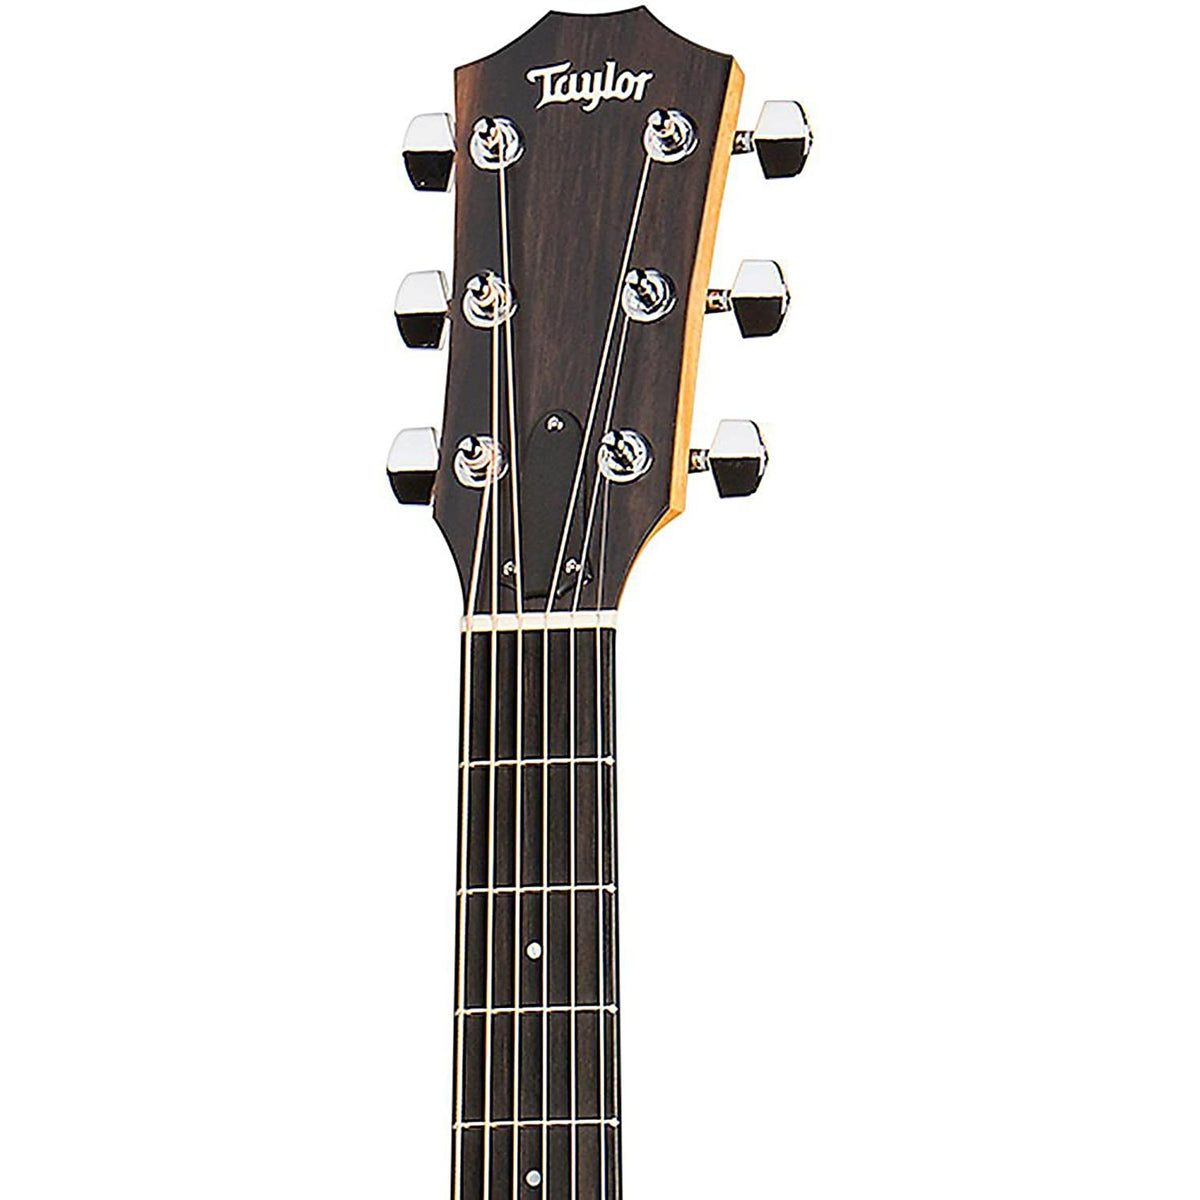 Taylor 110e Dreadnought Semi-Acoustic Guitar w/ Taylor Gig Bag - Natural